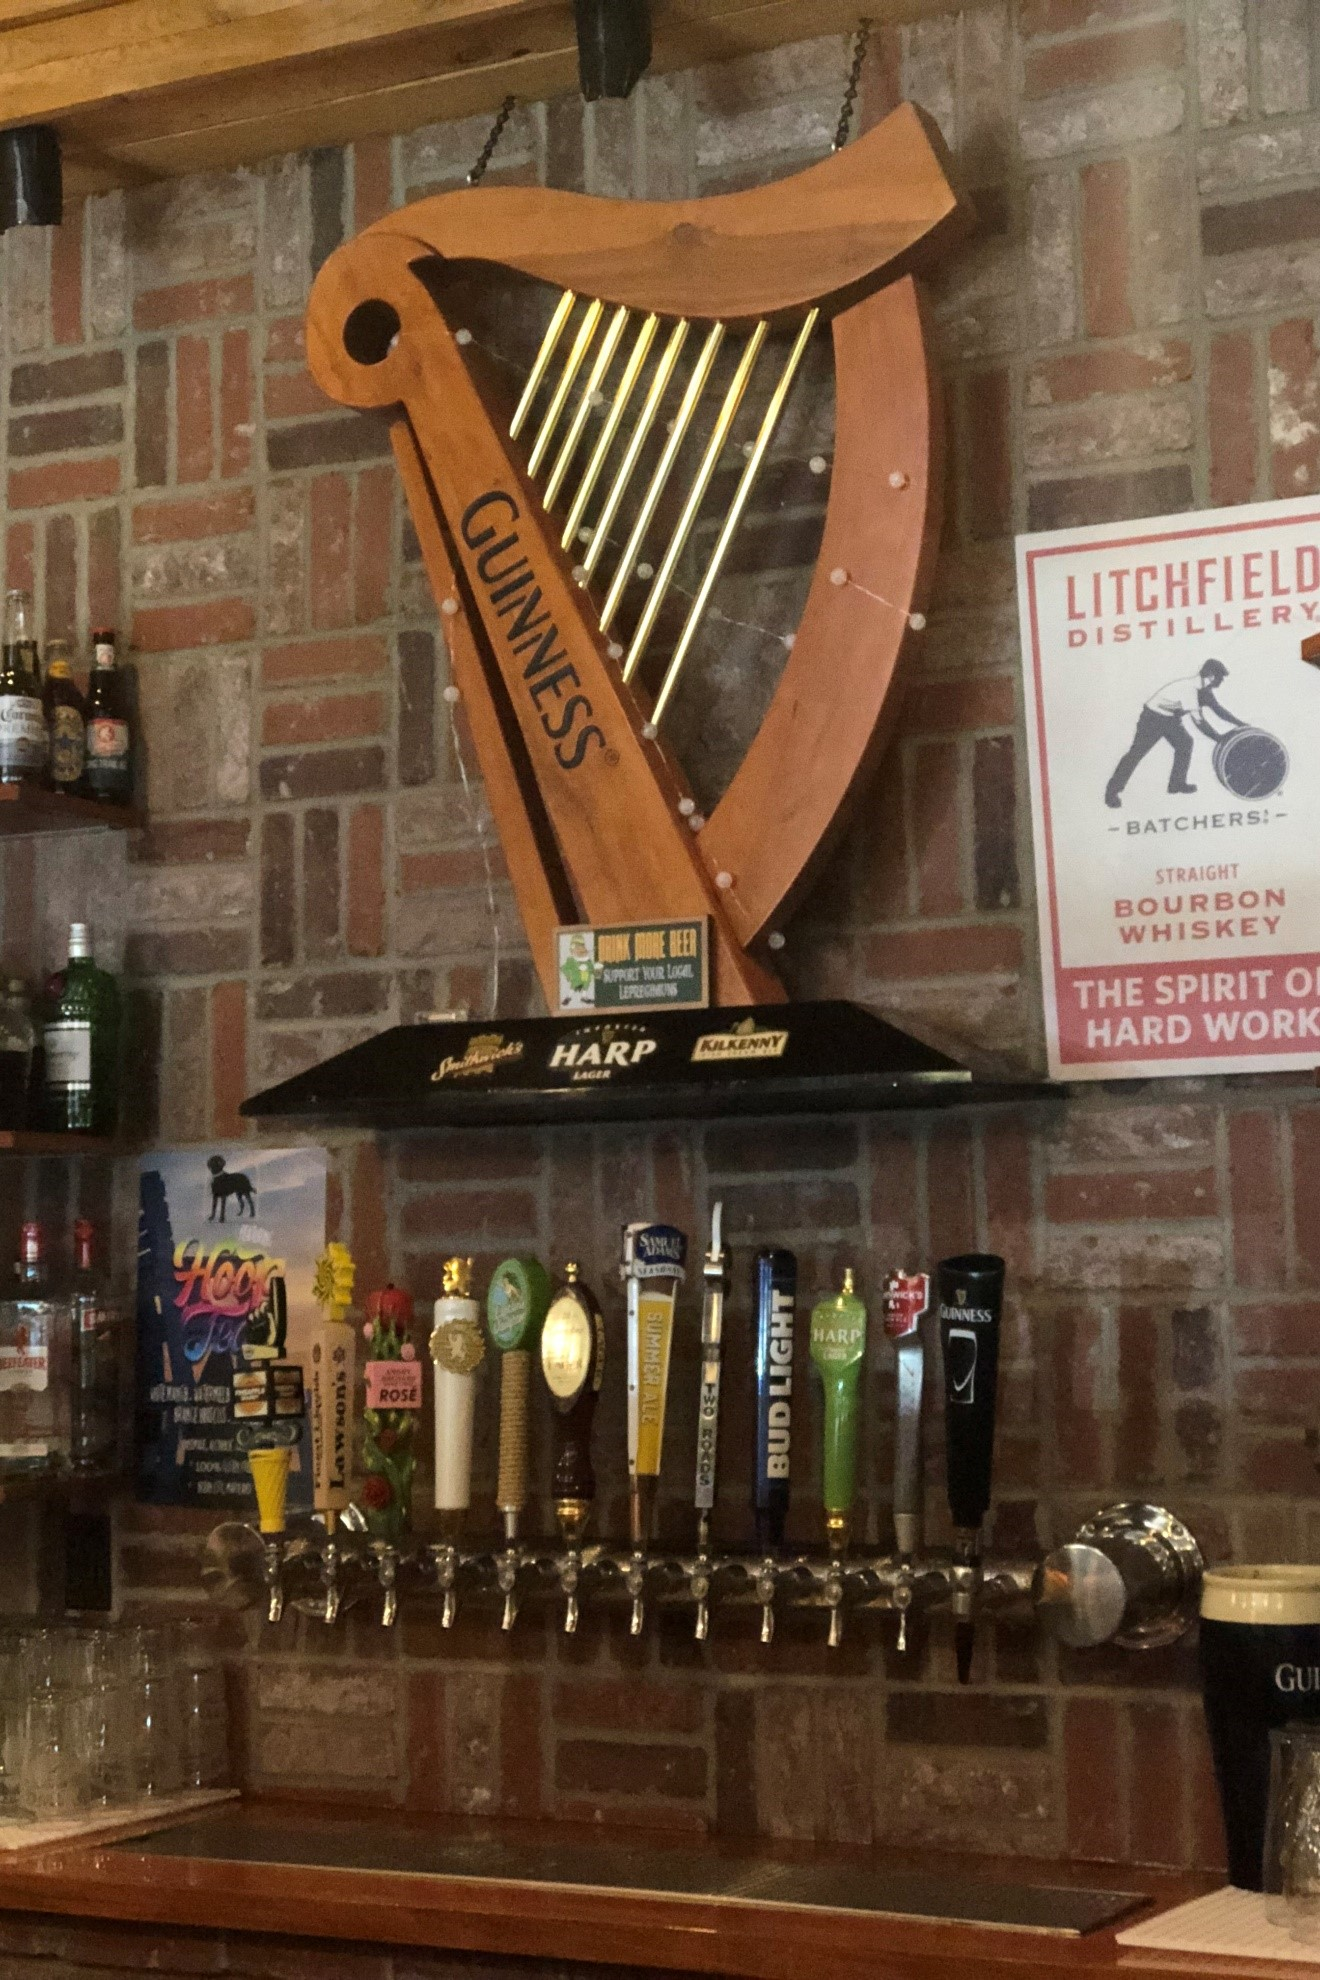 Guinness branded harp on a wall above assorted beer taps behind the bar